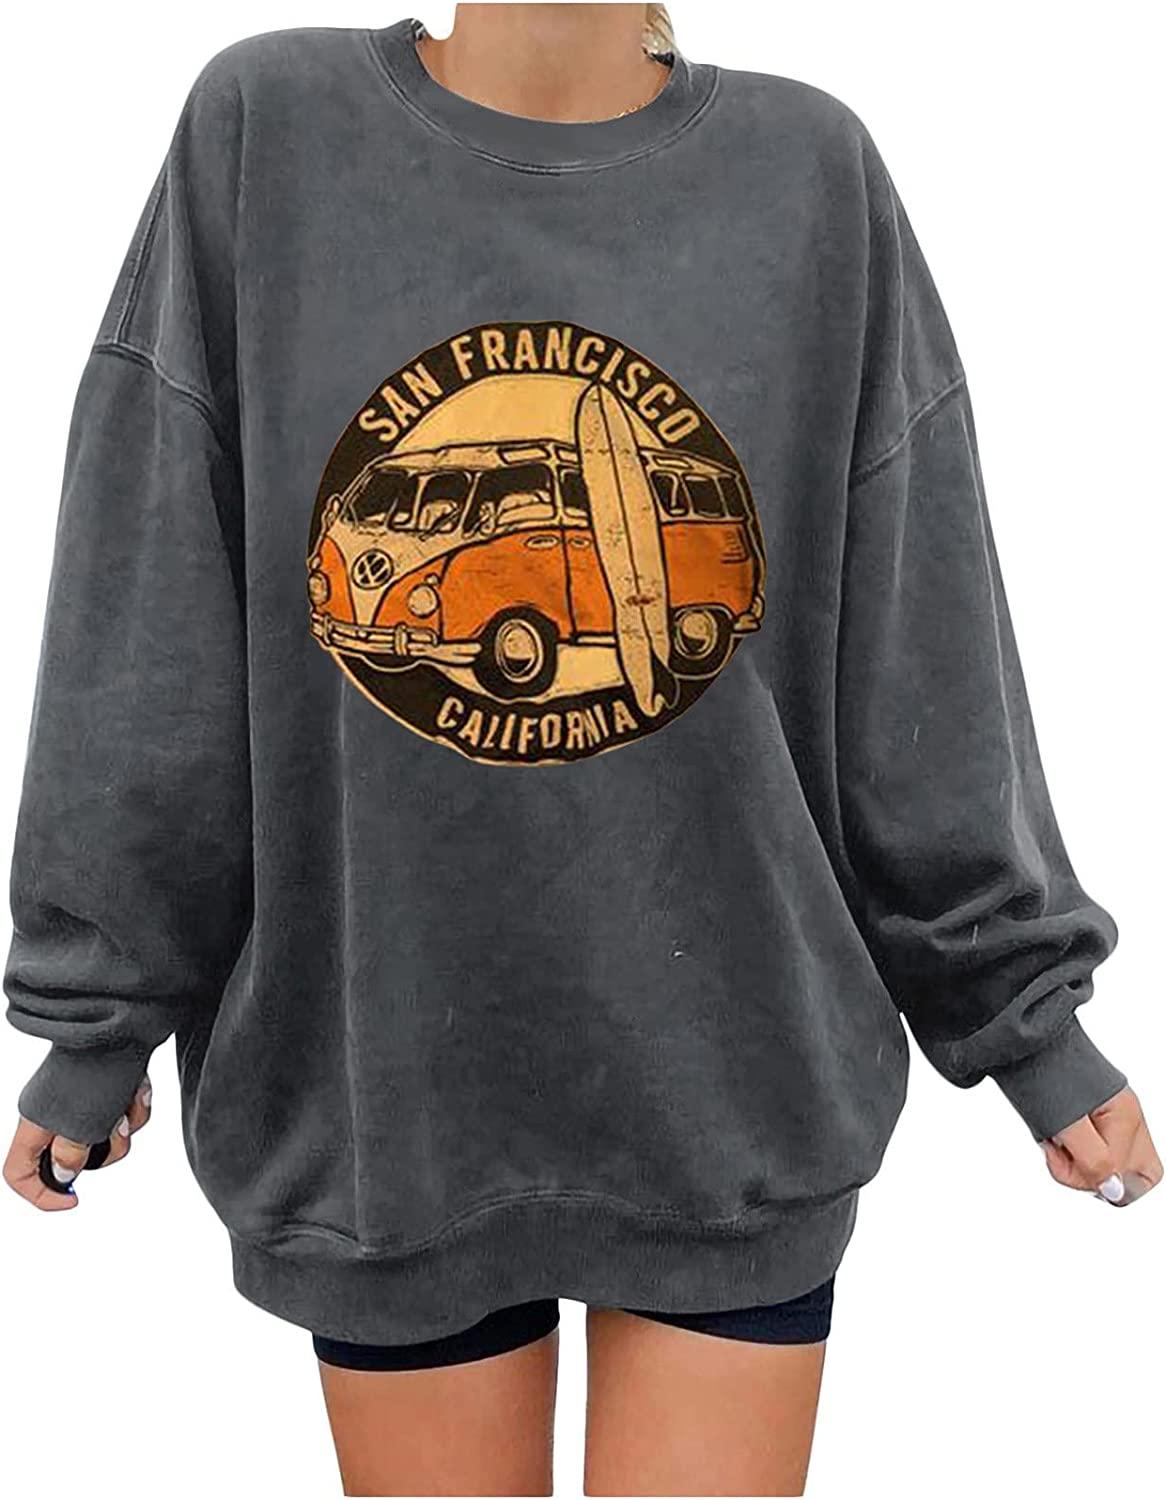 Kanzd Pullover Sweatshirts for Women Casual Loose Fit Trendy San Francisco Retro Car Graphic Long Sleeve Tops Blouse